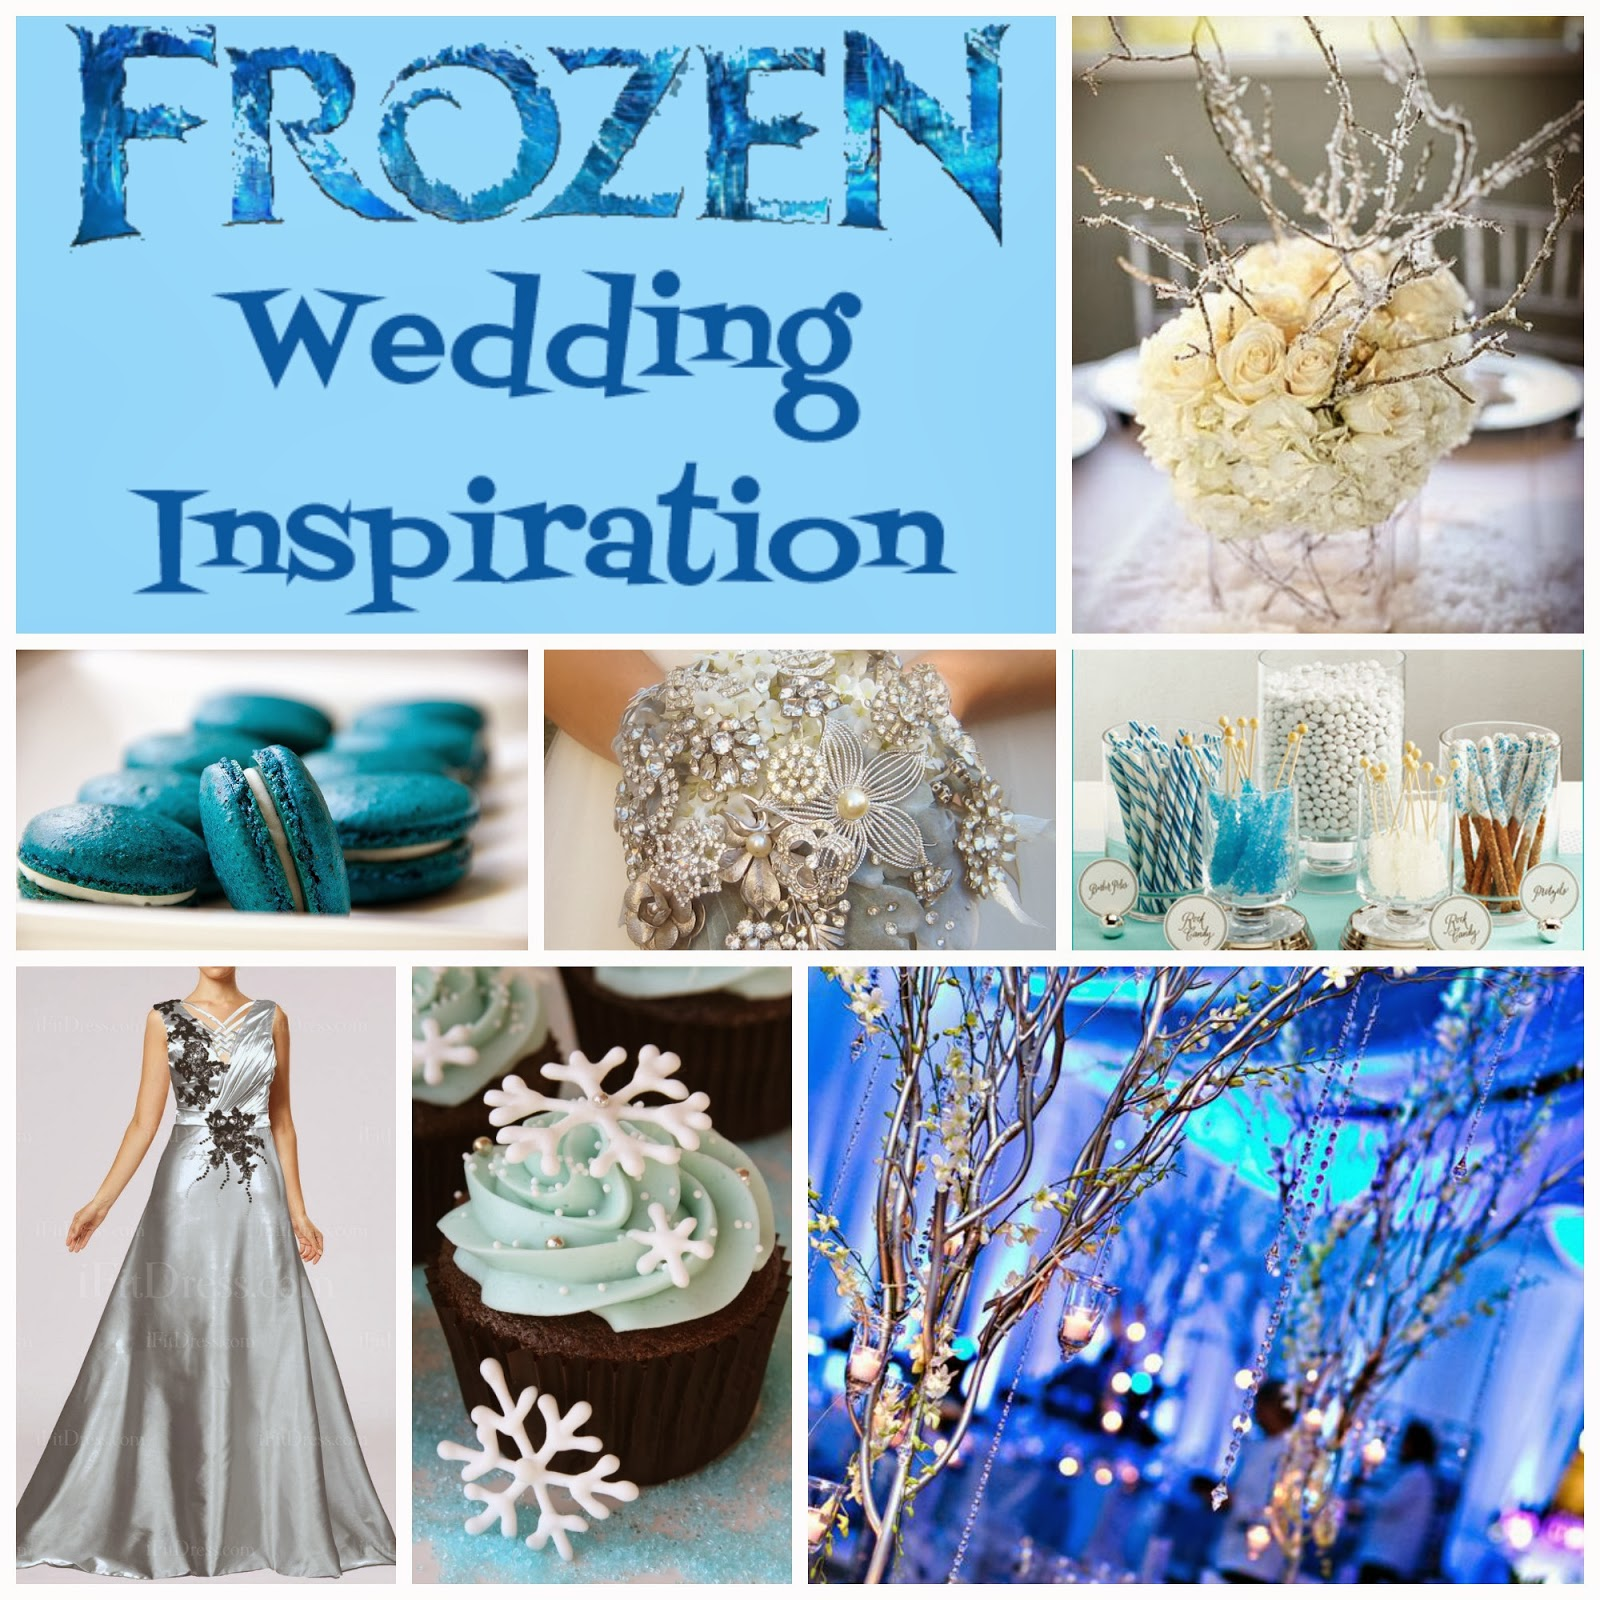 inspiration gallery themed wedding ideas